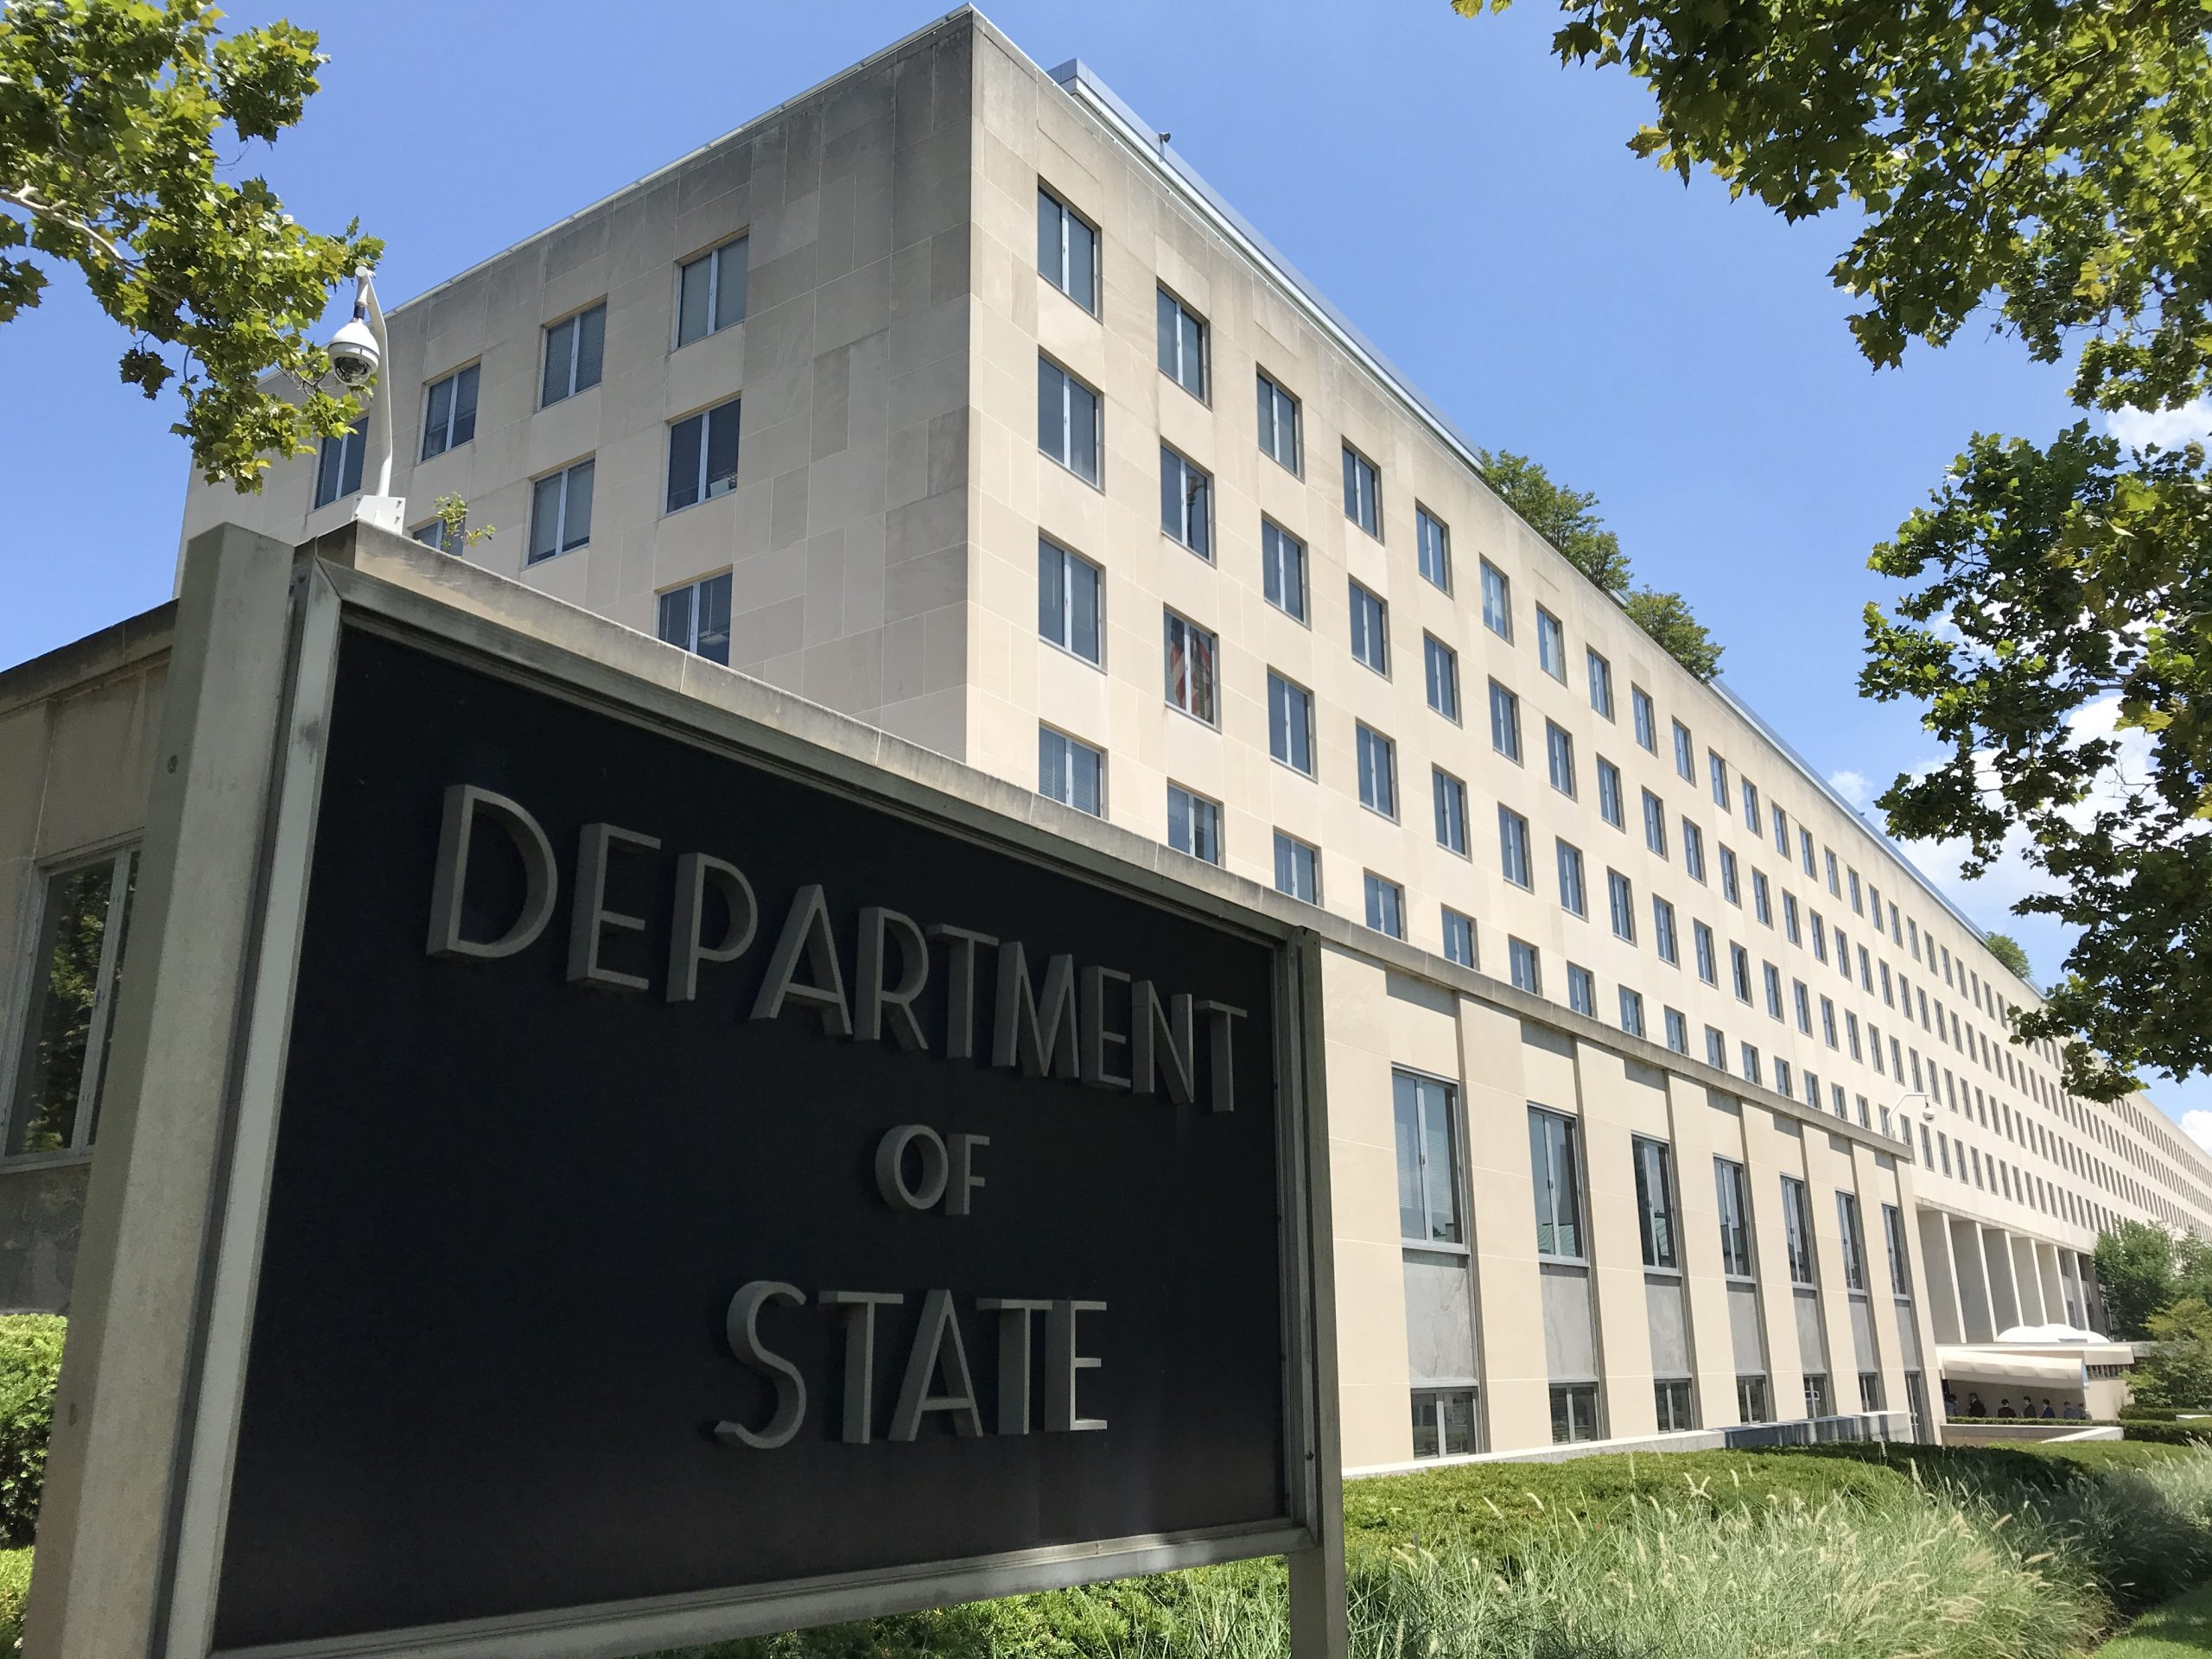 US Department of State / Signs and buildings.